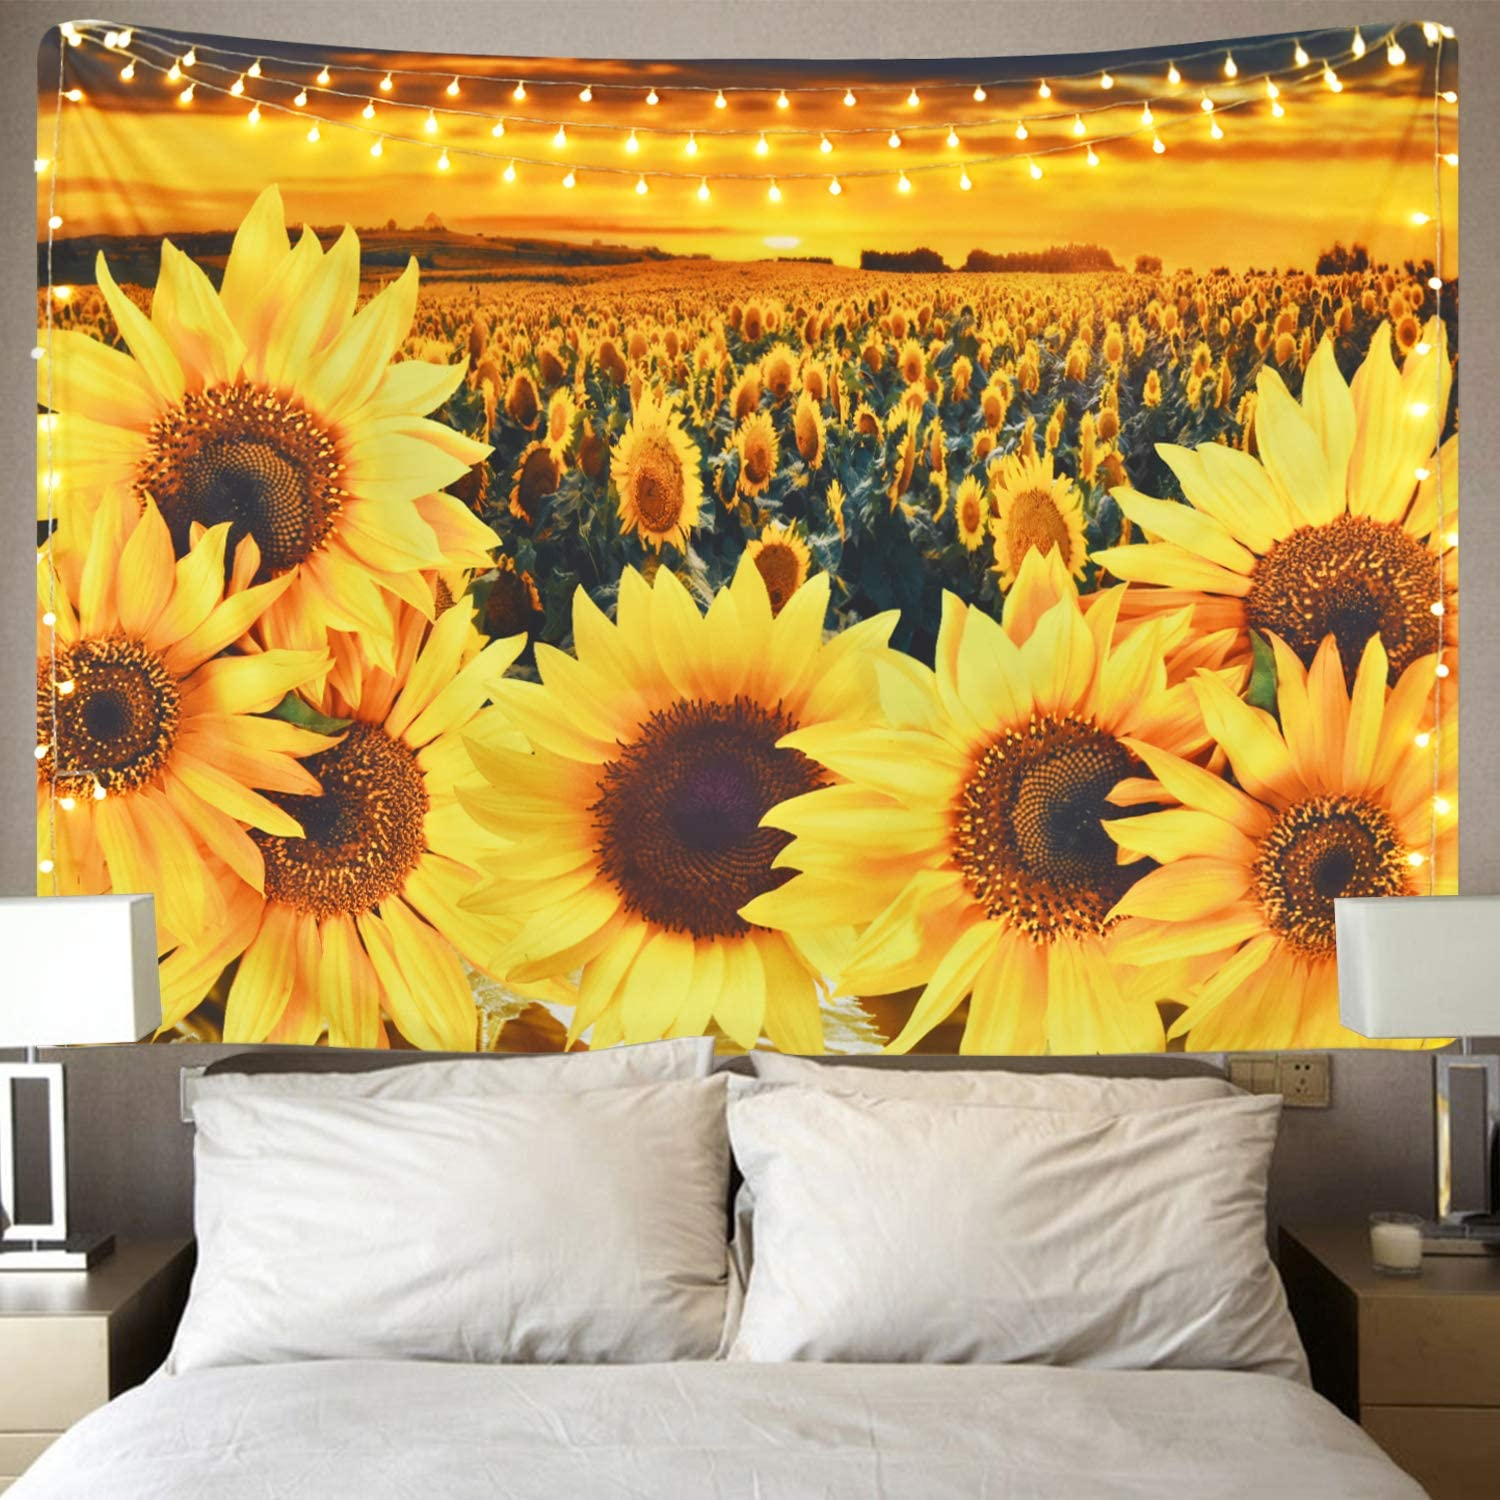 Sunflower Tapestry Cheap super special price Many popular brands Sunset Floral Field Plant